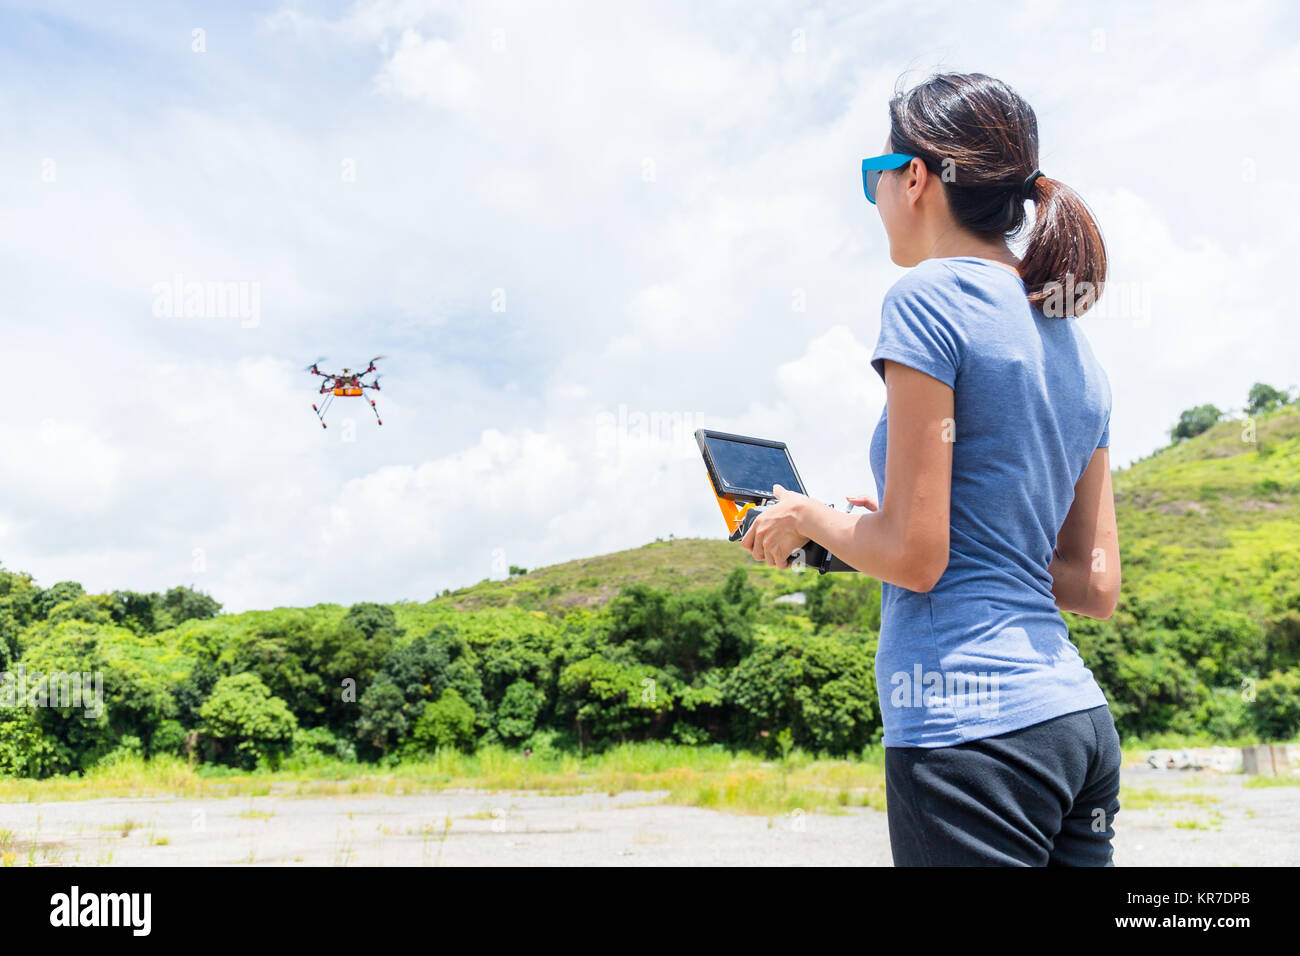 Young Woman remote flying drone - Stock Image